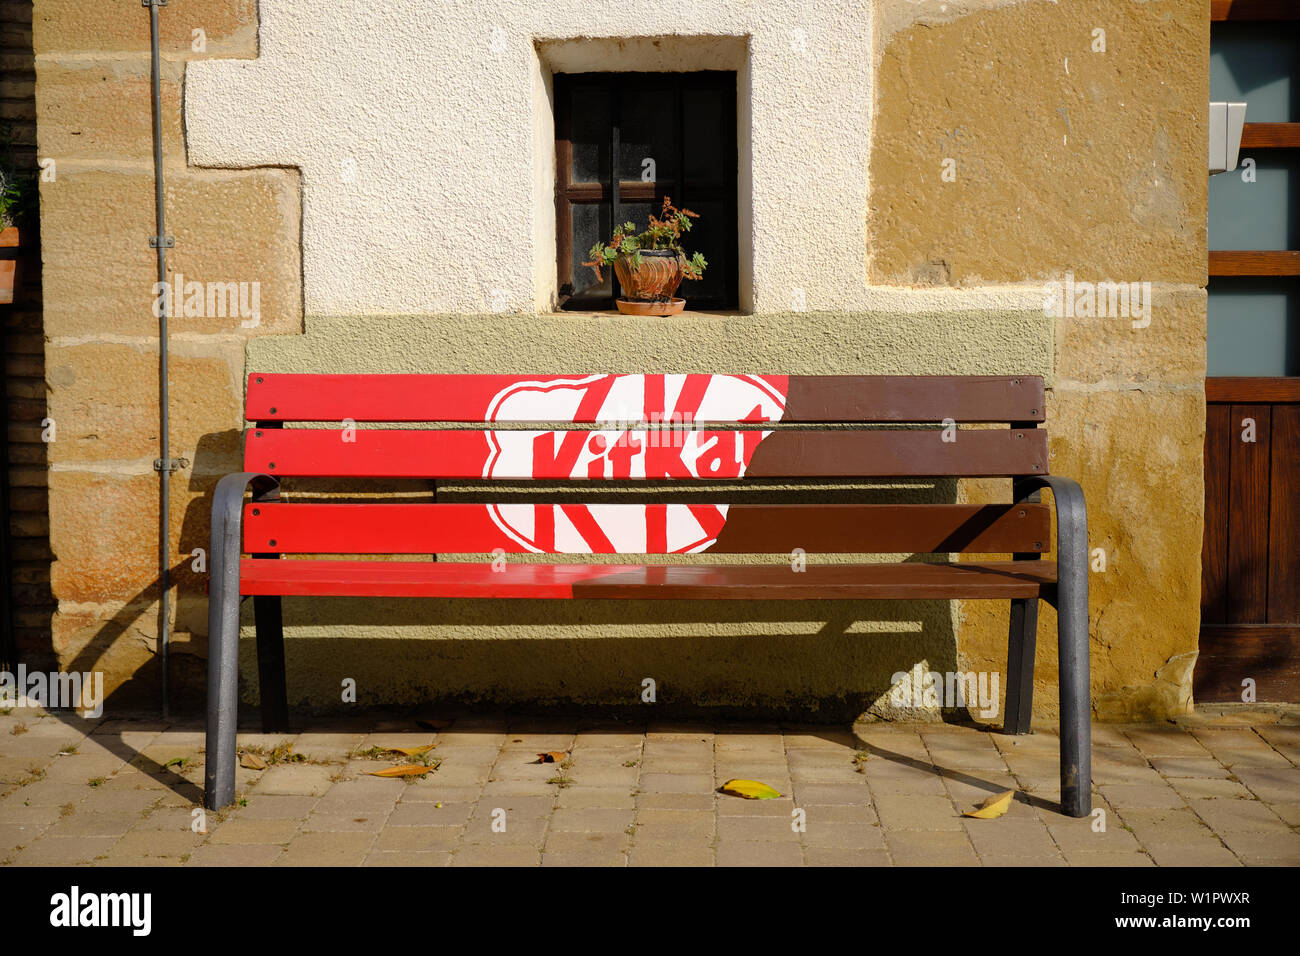 Bench with KitKat advertising on sunny day.  Arre, Spain. Stock Photo